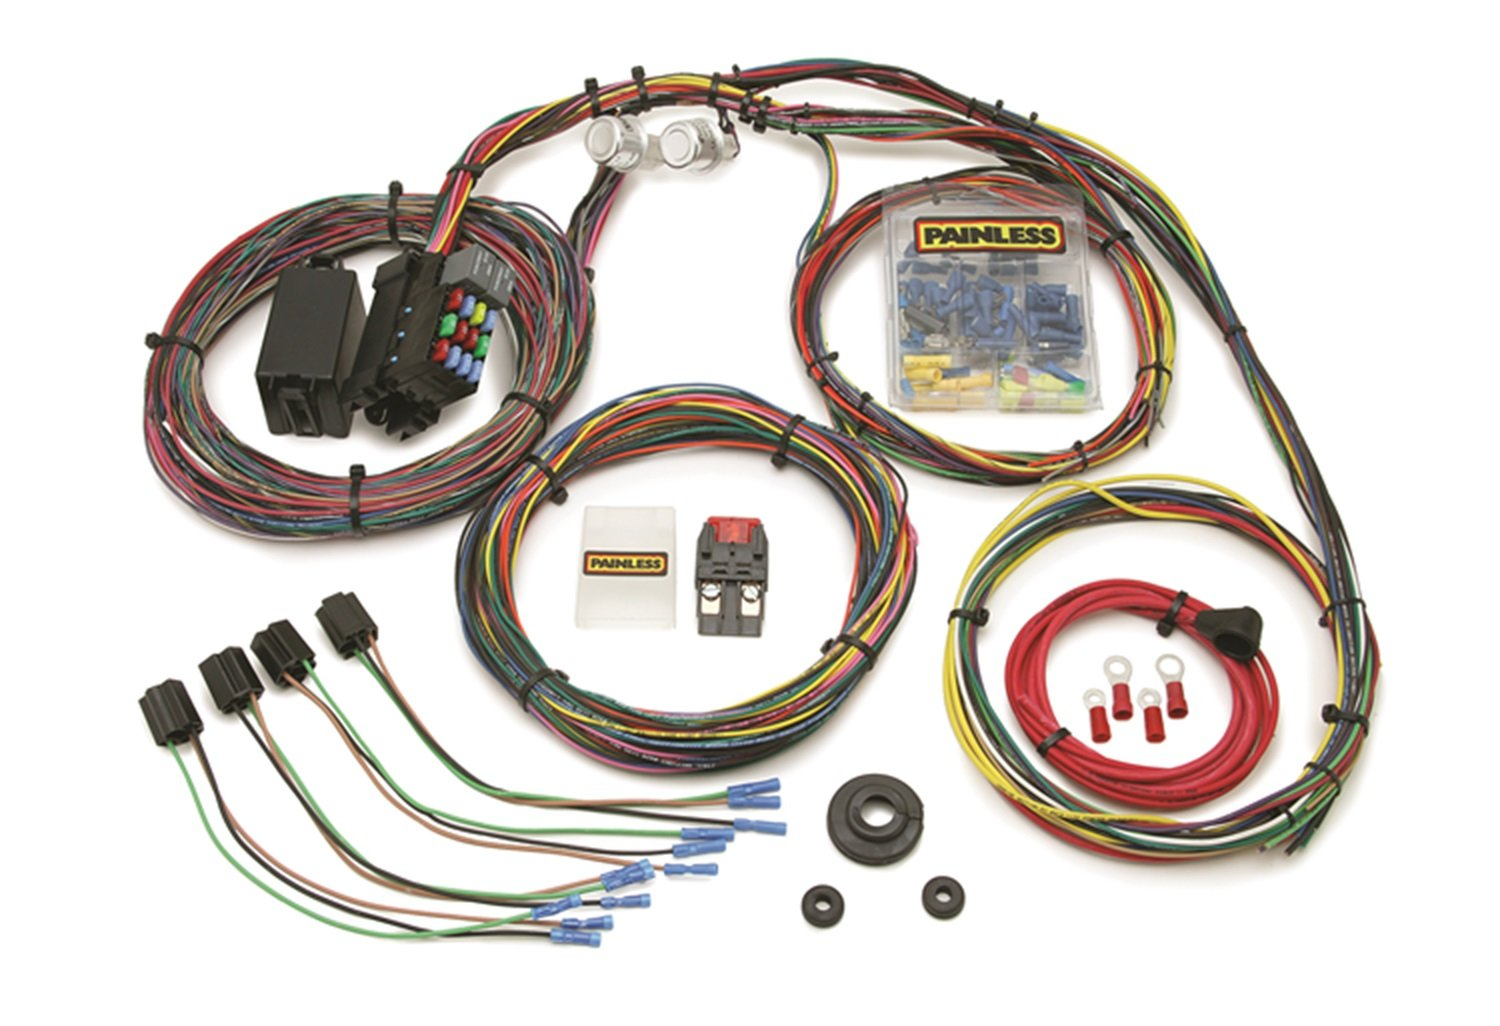 71gWOH5D5zL._SL1500_ amazon com painless 10127 automotive painless wiring harness rebate at panicattacktreatment.co